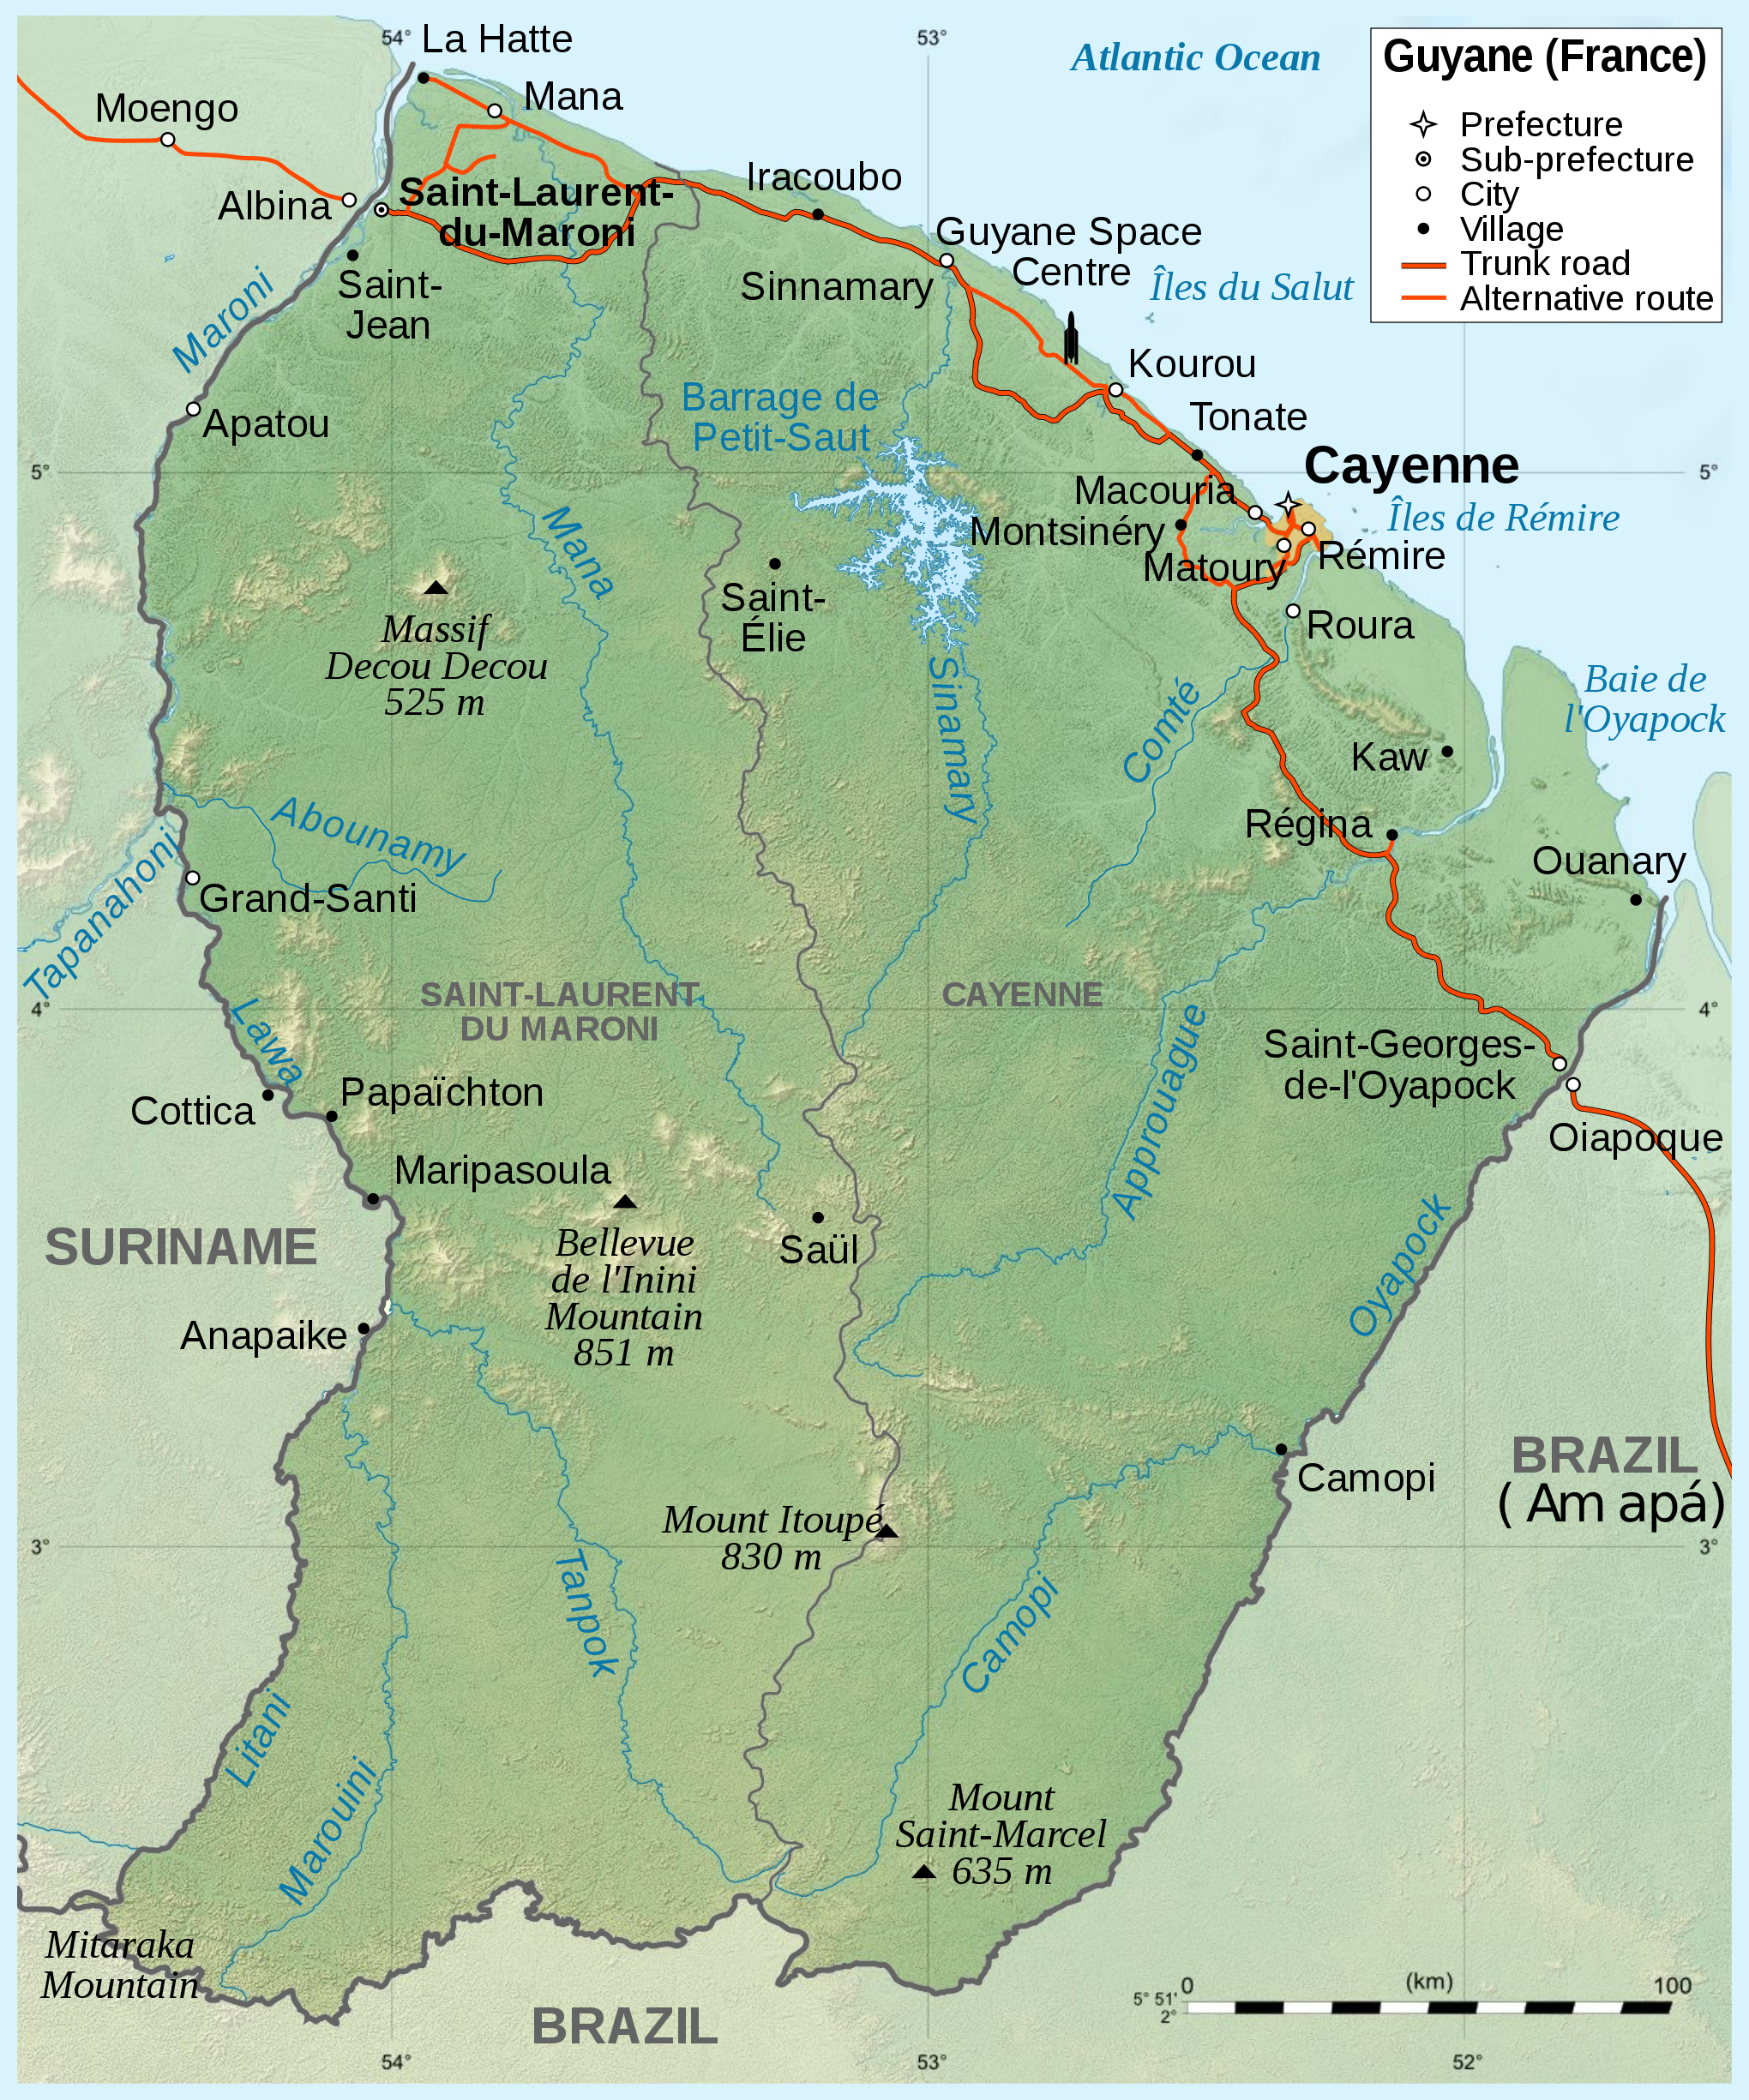 Large Scale Map Of France.Large Scale Political Map Of French Guiana With Relief Roads